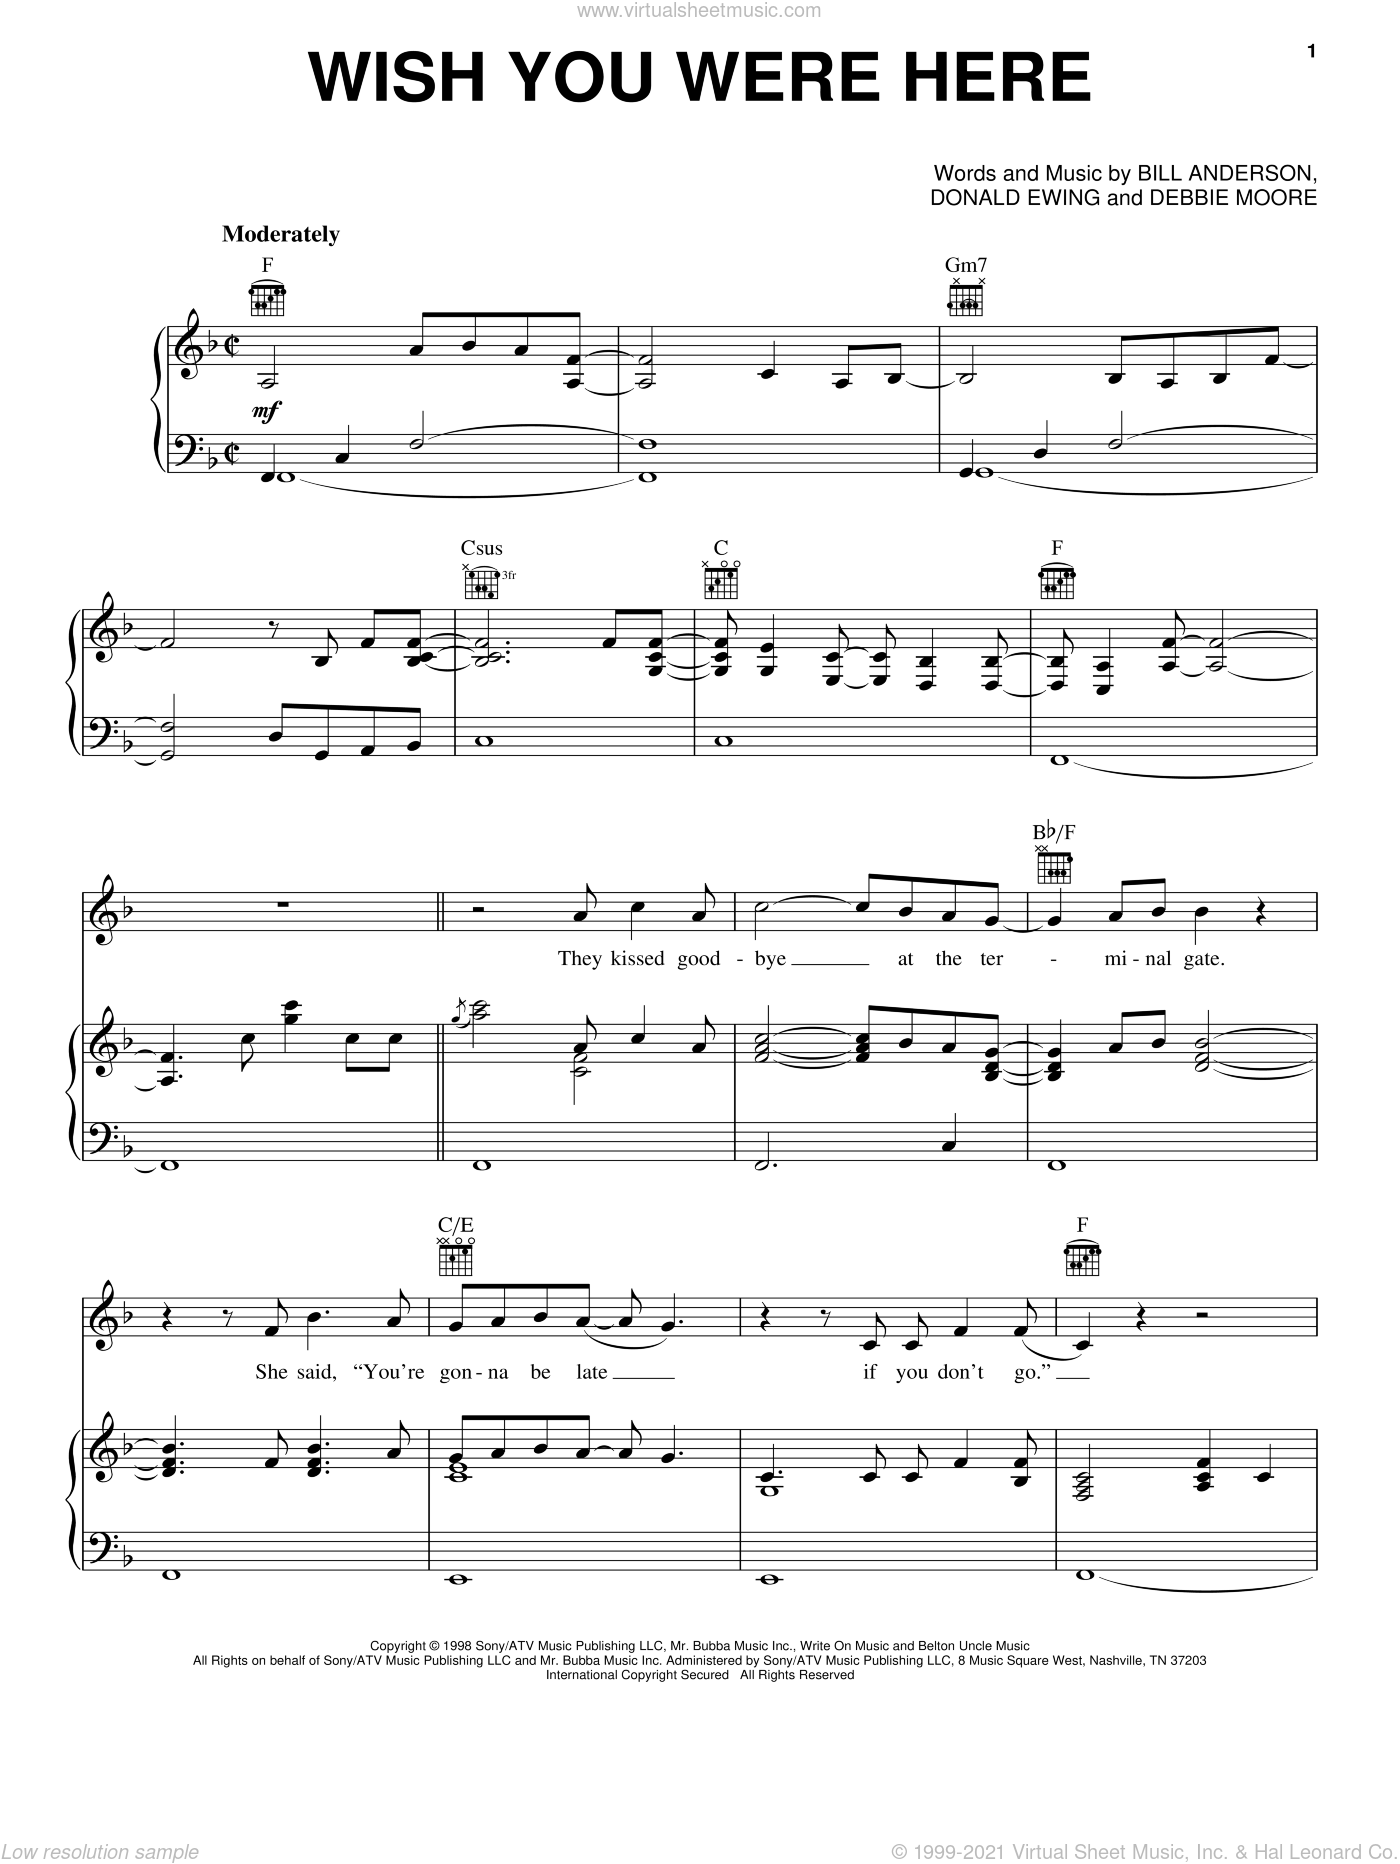 Wish You Were Here sheet music for voice, piano or guitar by Donald Ewing